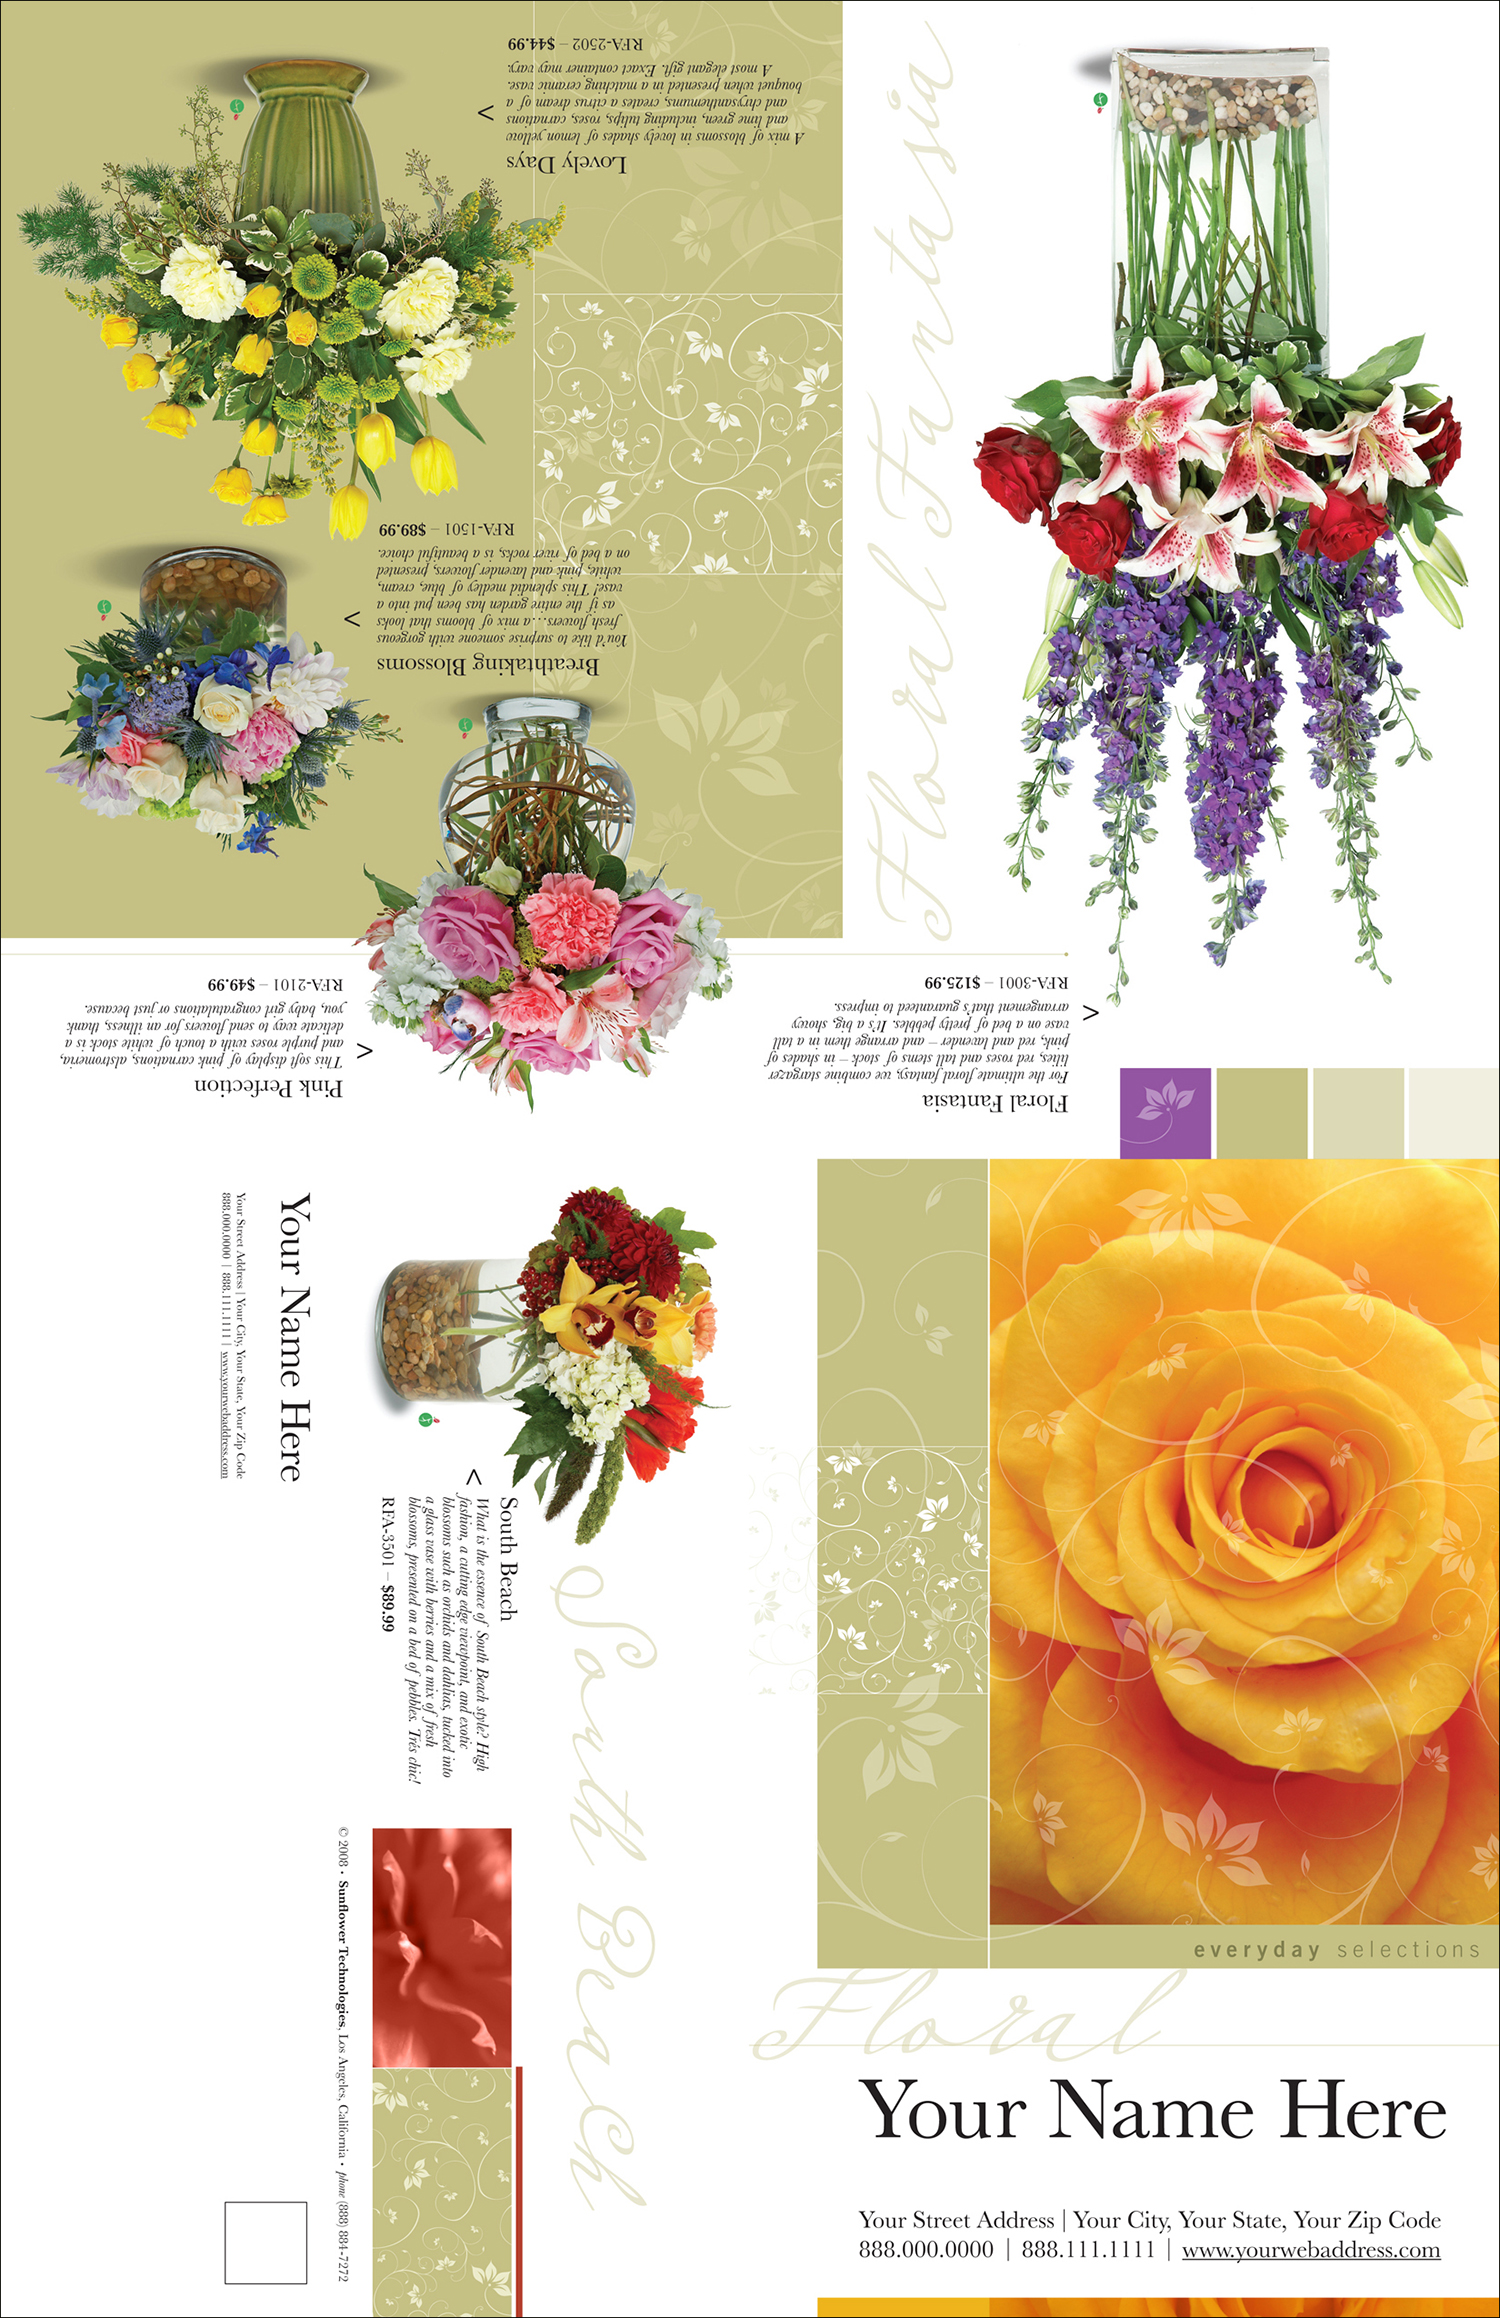 Catalogs — Linda Frost & Associates